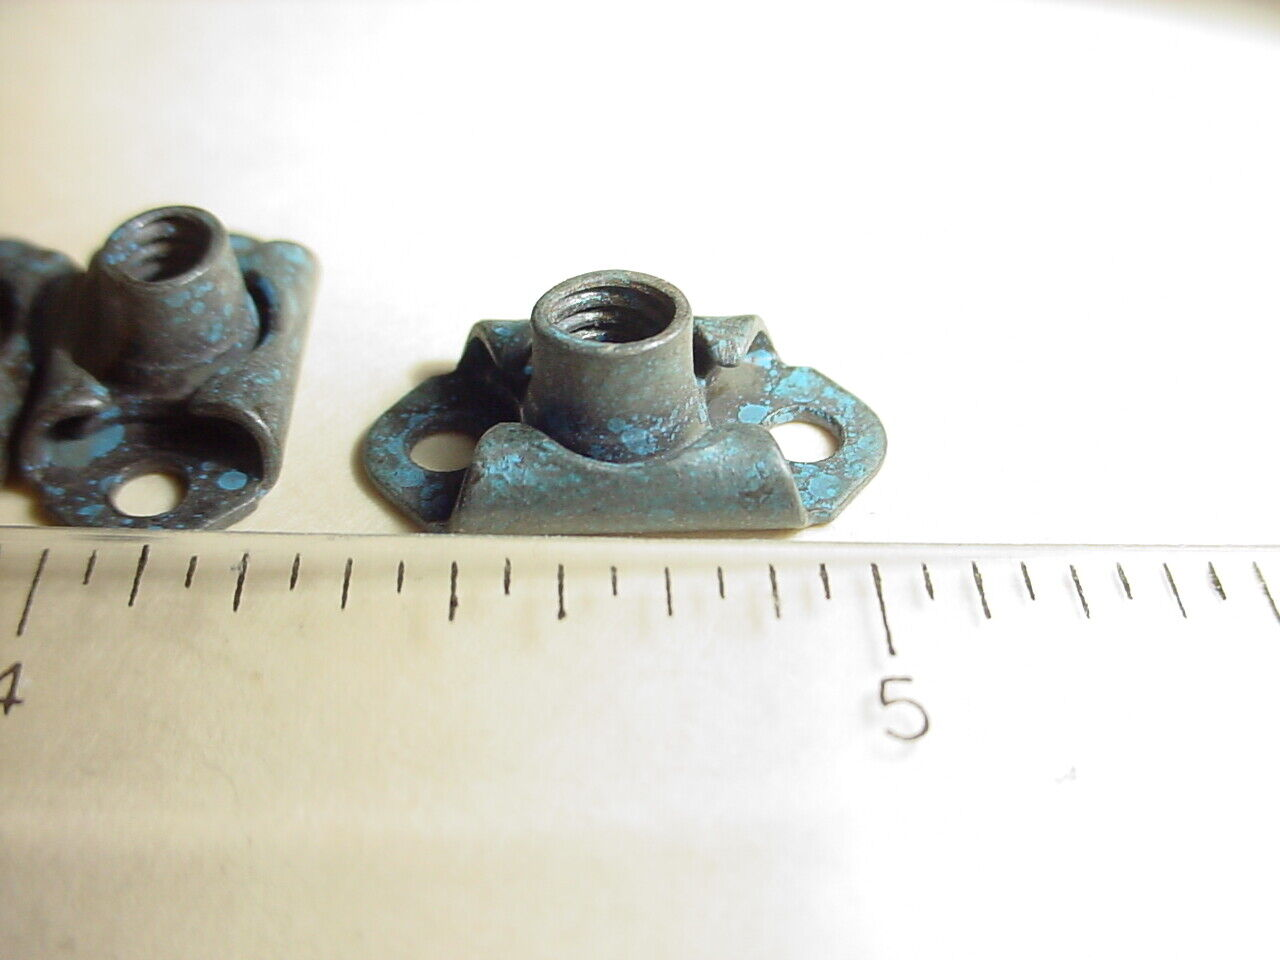 20 Each, NEW Floating Anchor Nut Plate Stainless steel 8-32 MINIATURE